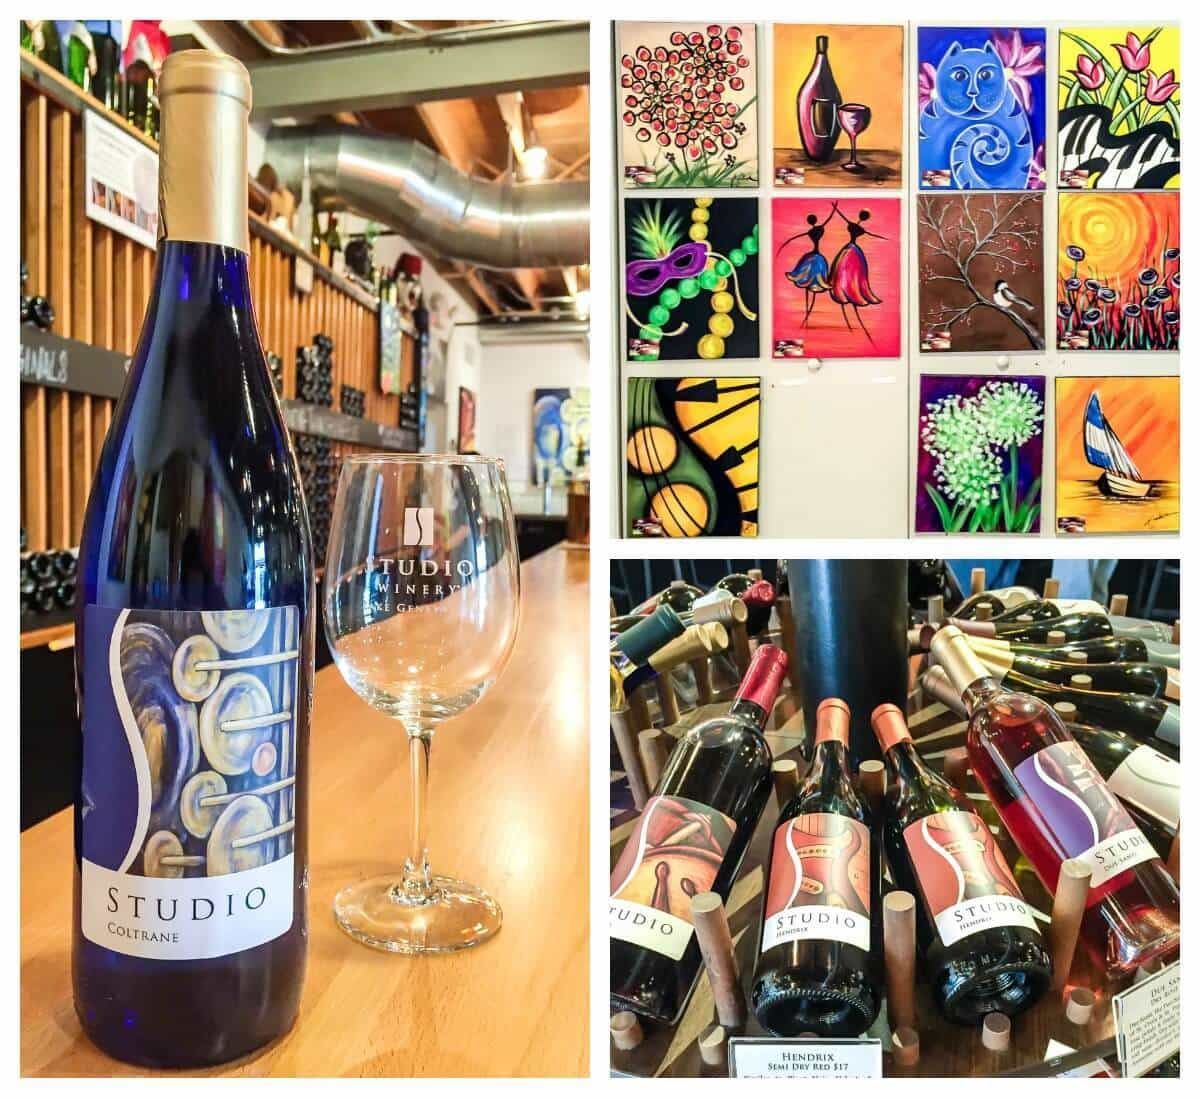 Best places to visit, eat, and drink in Lake Geneva Wisconsin, including Studio Winery